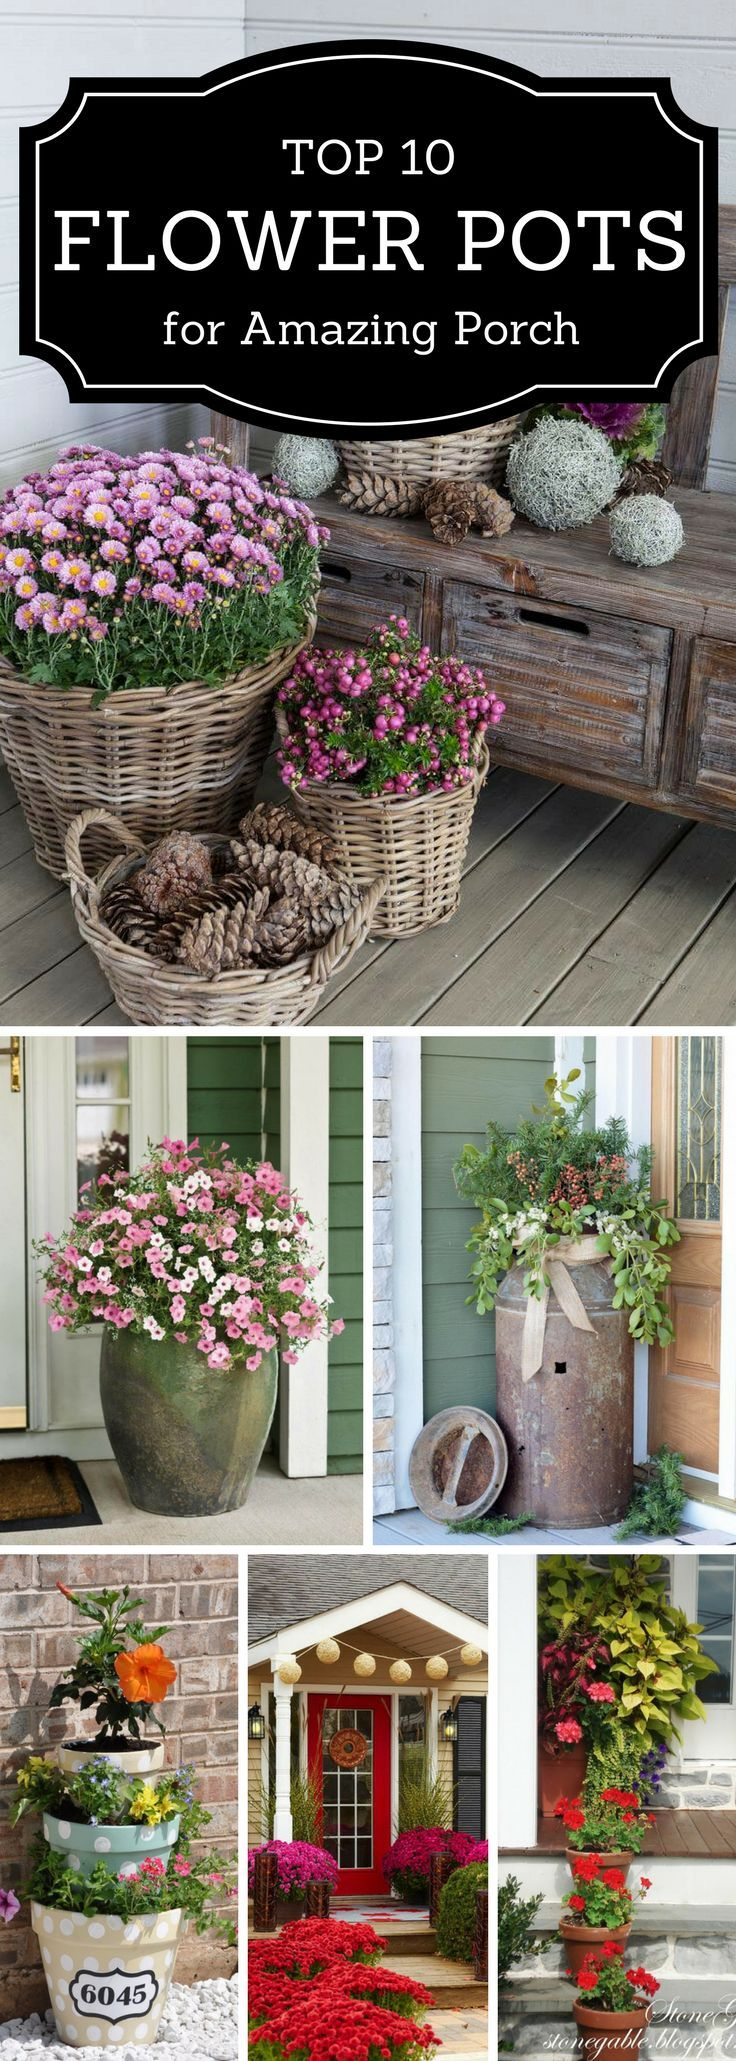 One, two, three, plant something! Browse 10 flower pot ideas for your outdoor oasis: